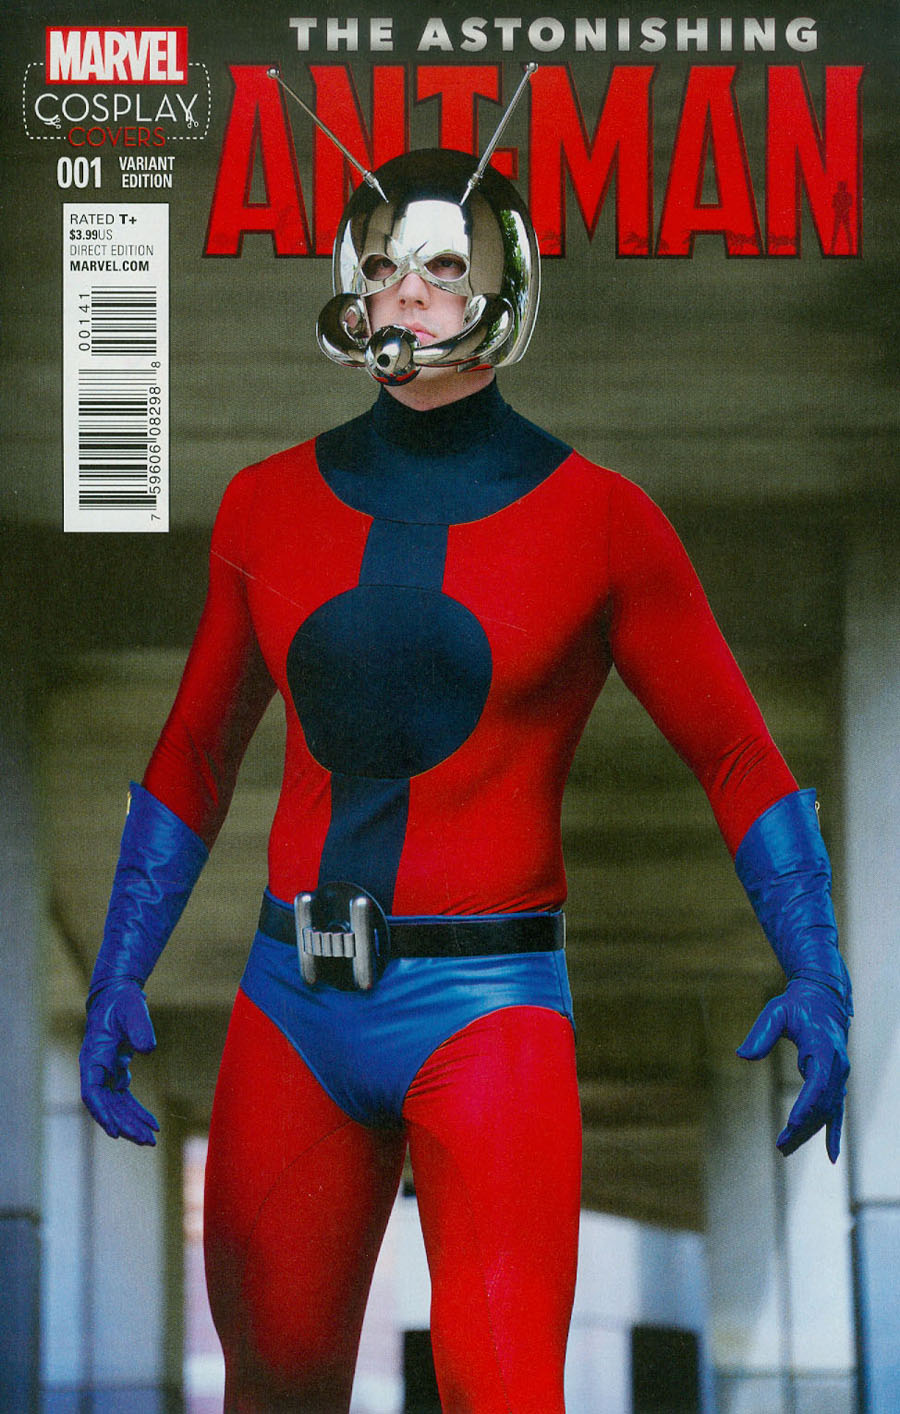 Astonishing Ant-Man #1 Cover F Incentive Cosplay Variant Cover